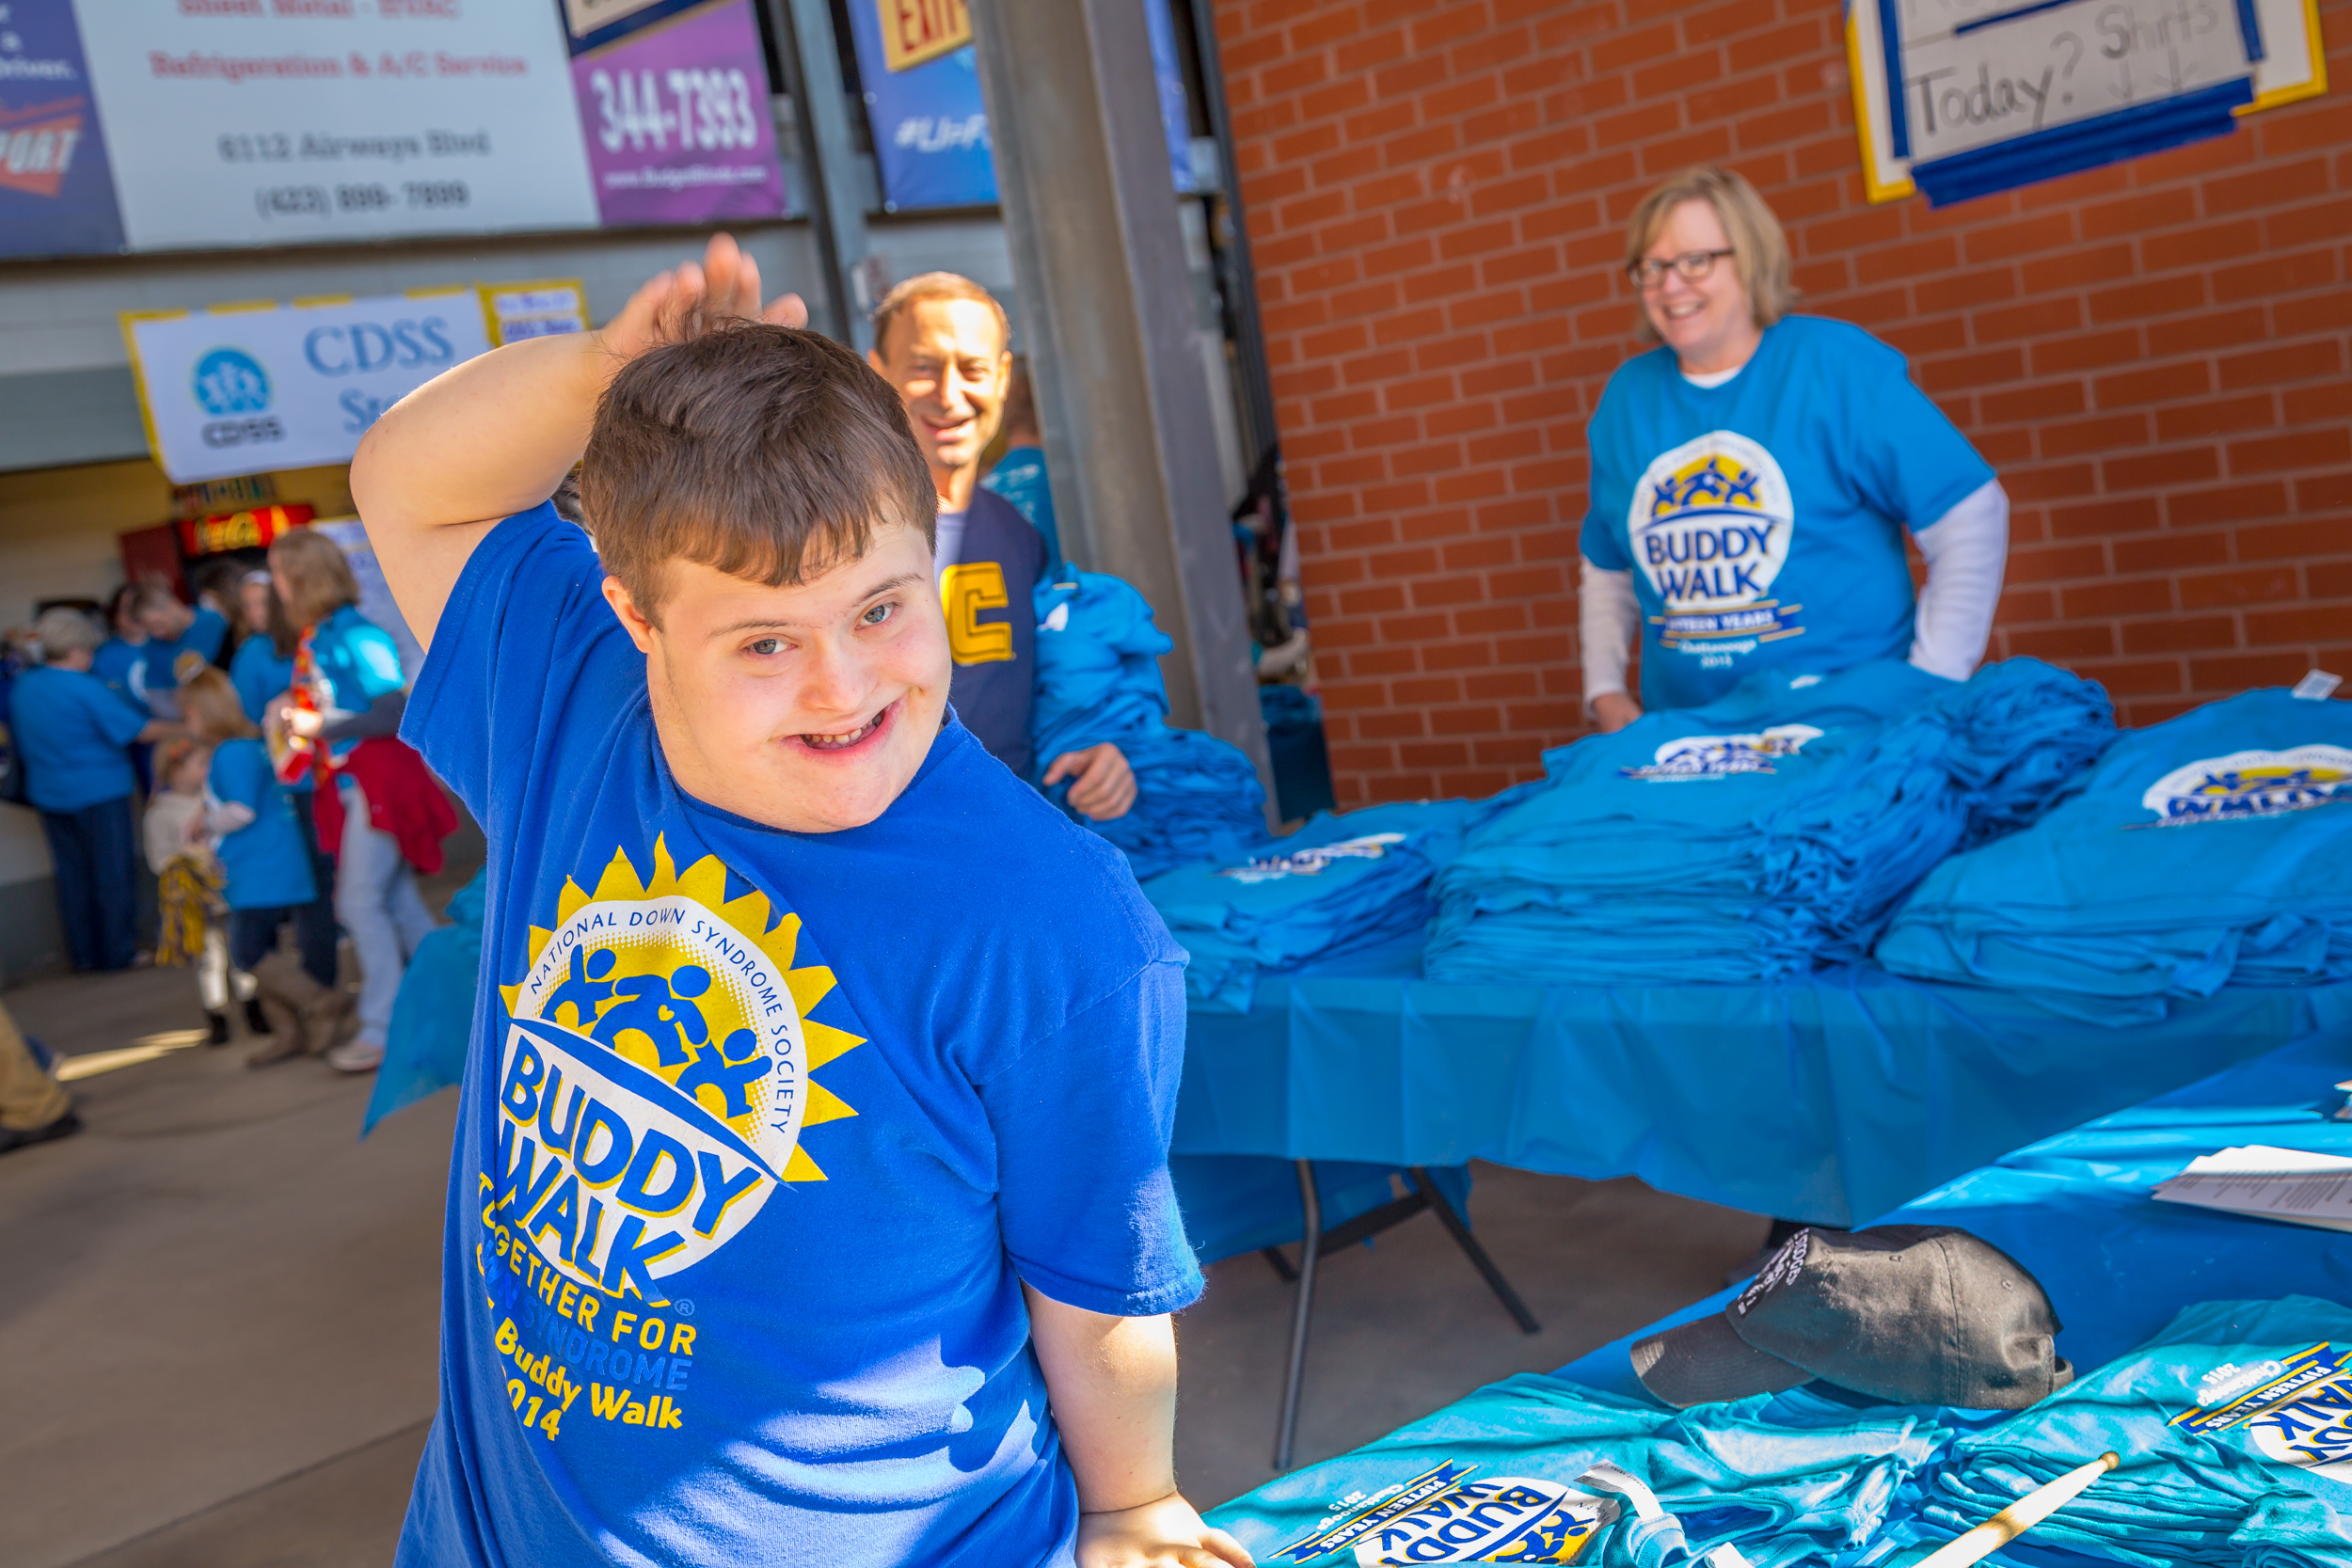 2015 CDSS Buddy Walk-2.jpg